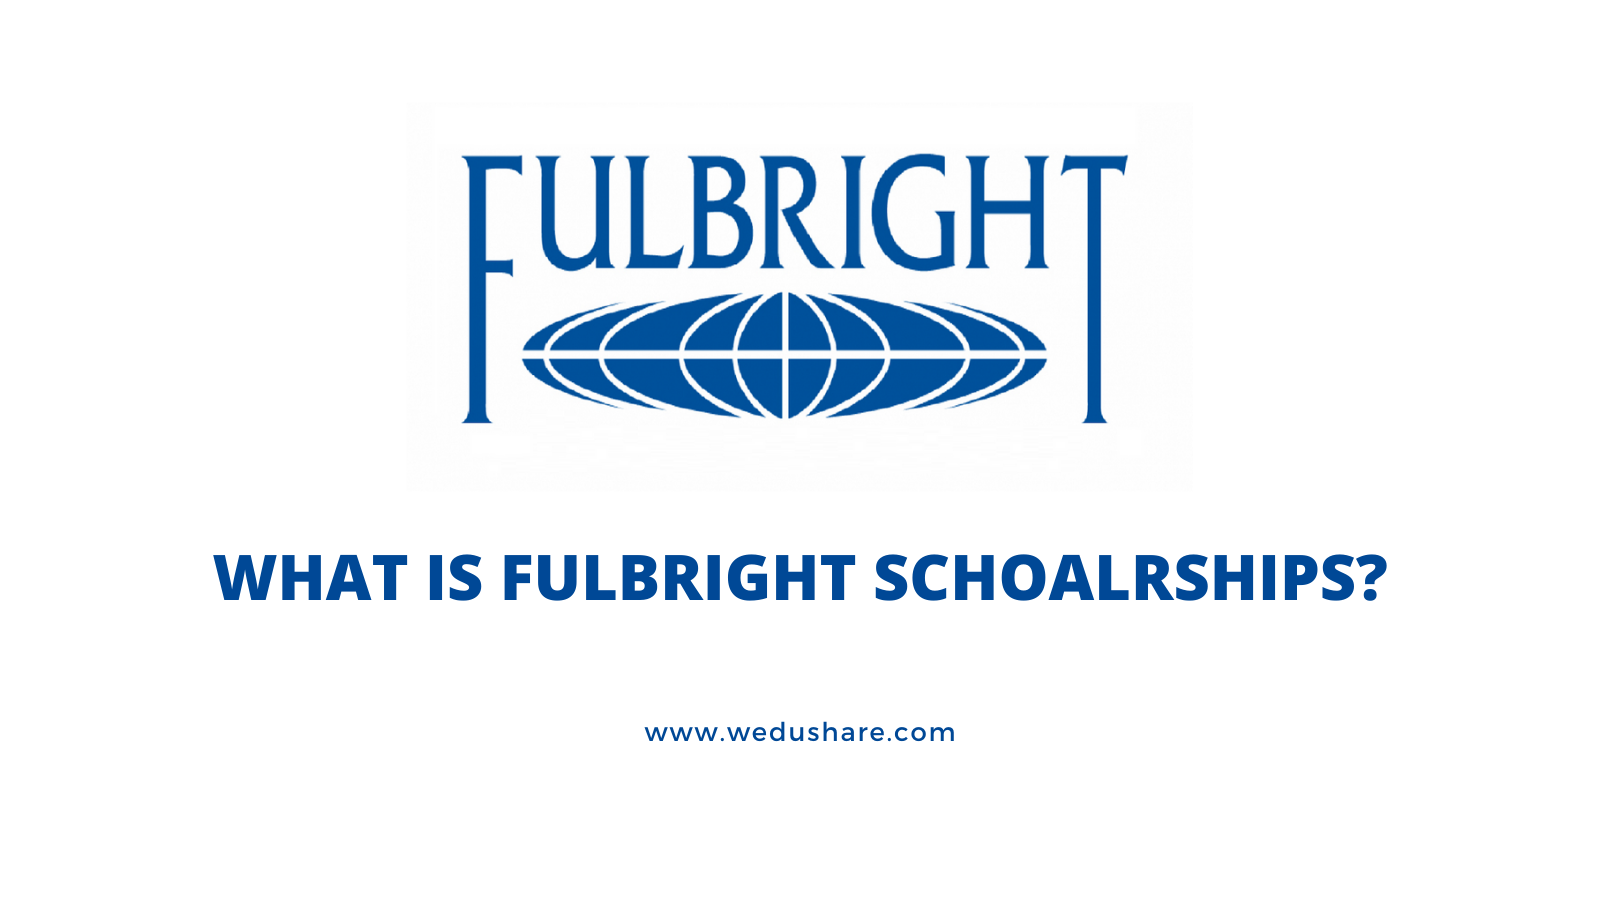 What is Fulbright Student Fellowships?